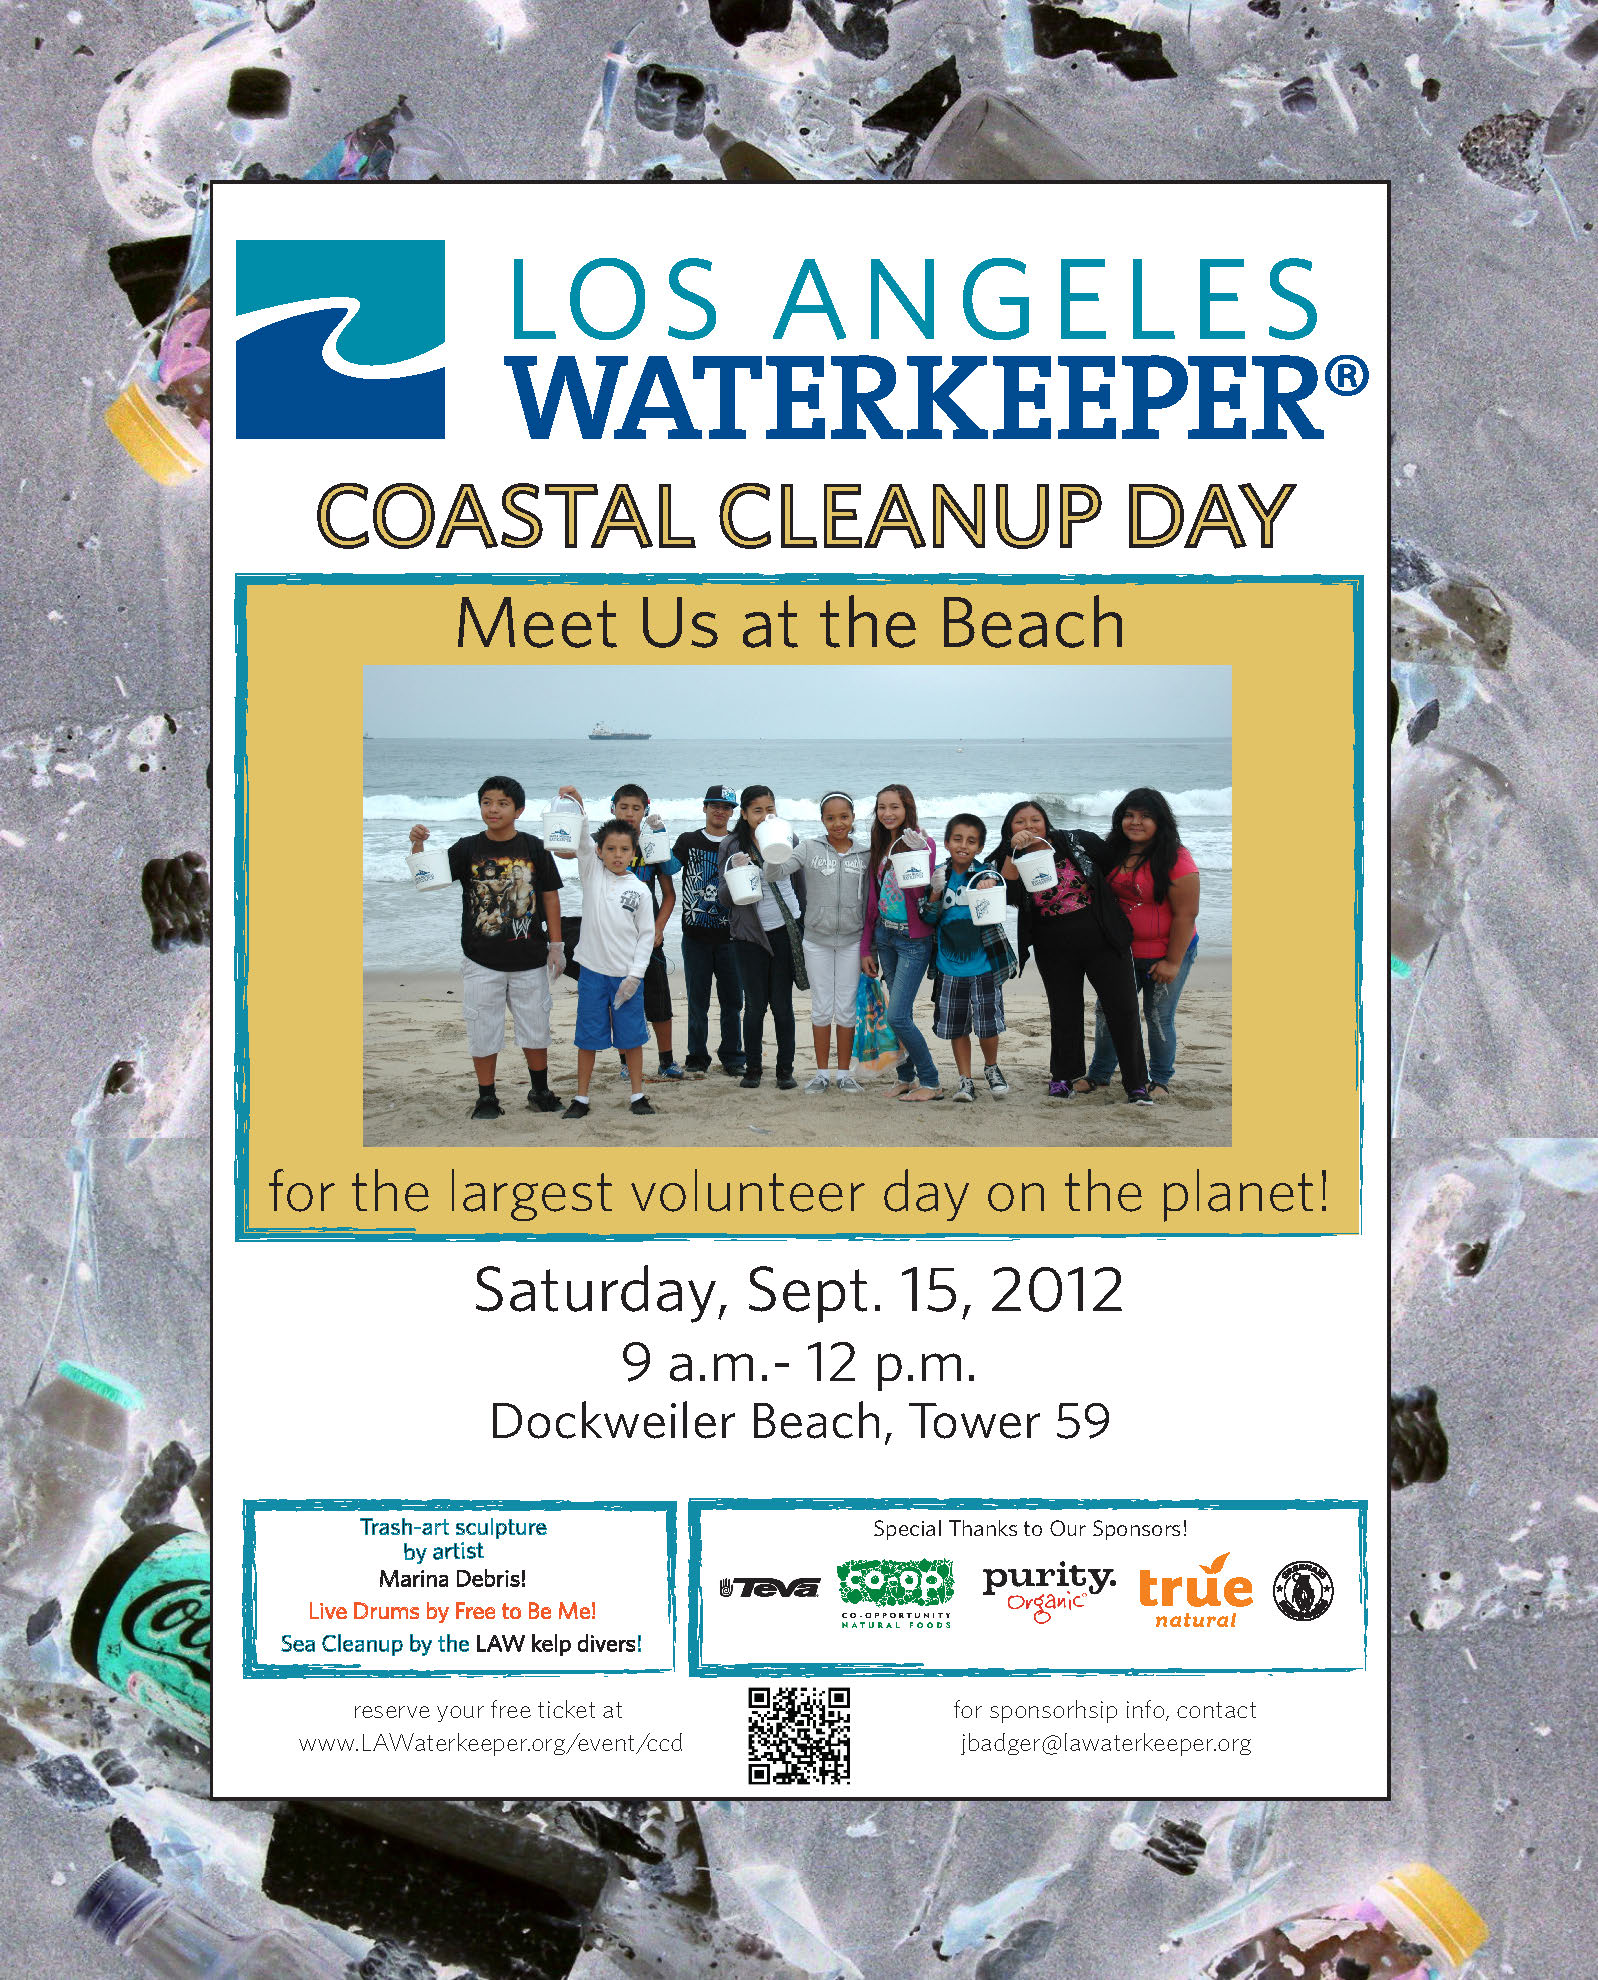 Meet us at Dockweiler Beach, Tower 59 for Coastal Cleanup Day